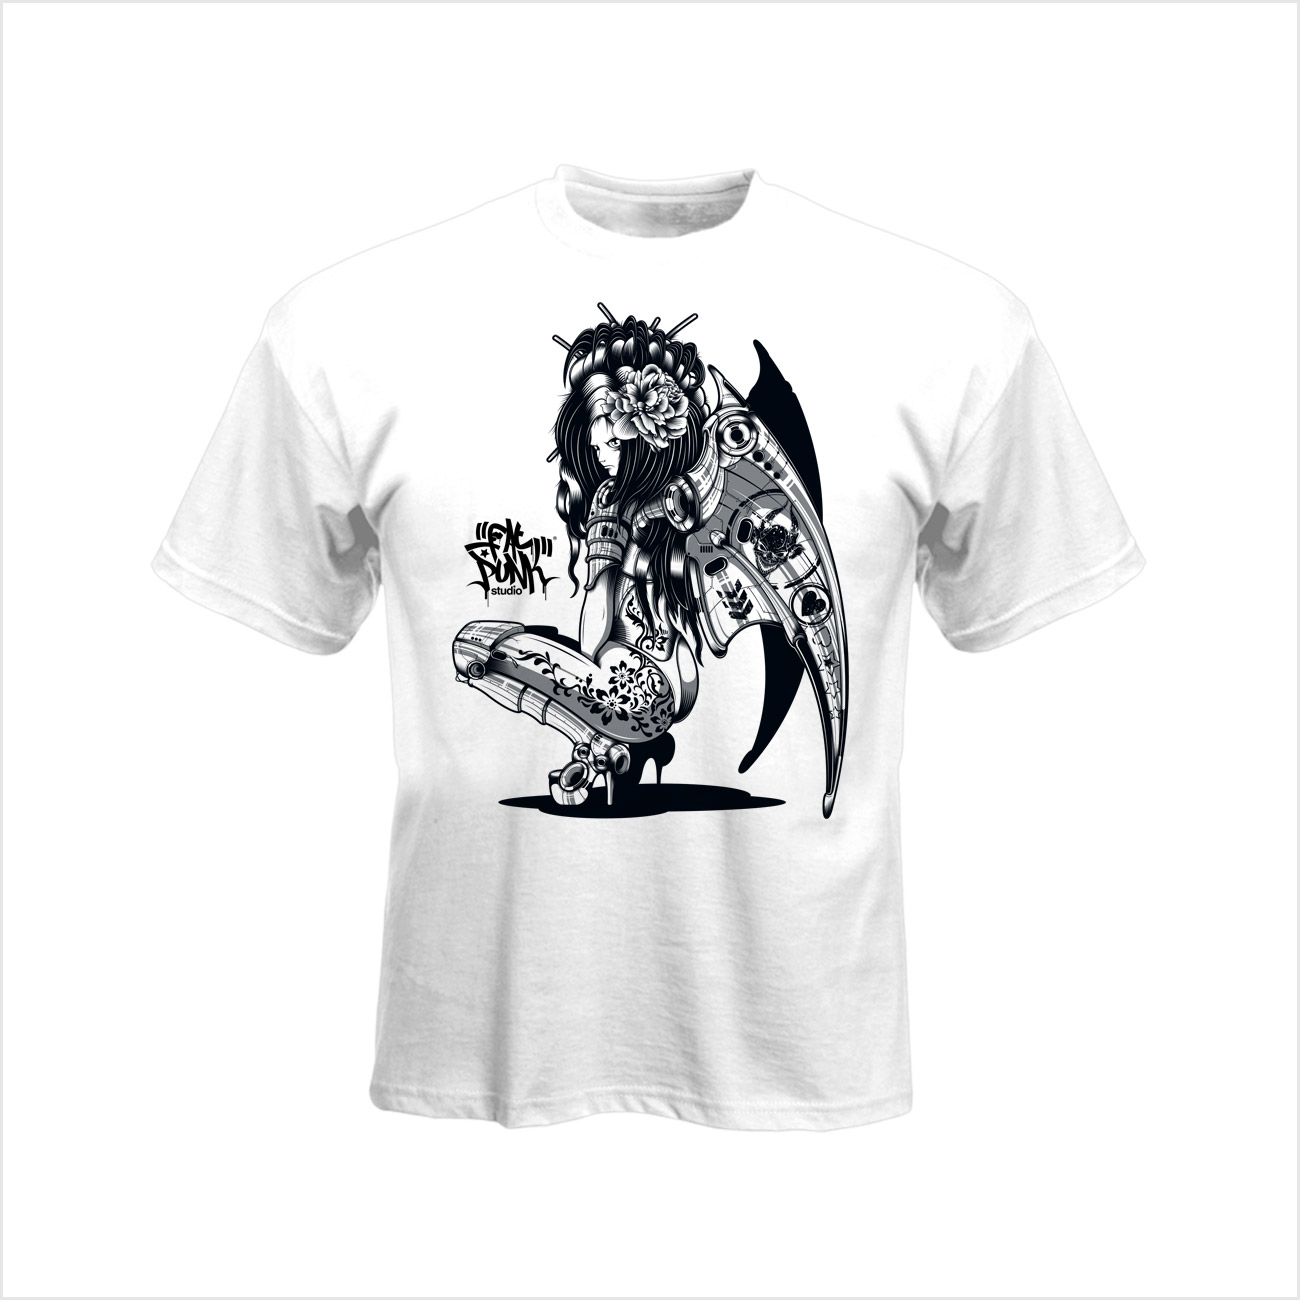 fat-punk-studio-battle-angel-t-shirt-white-01